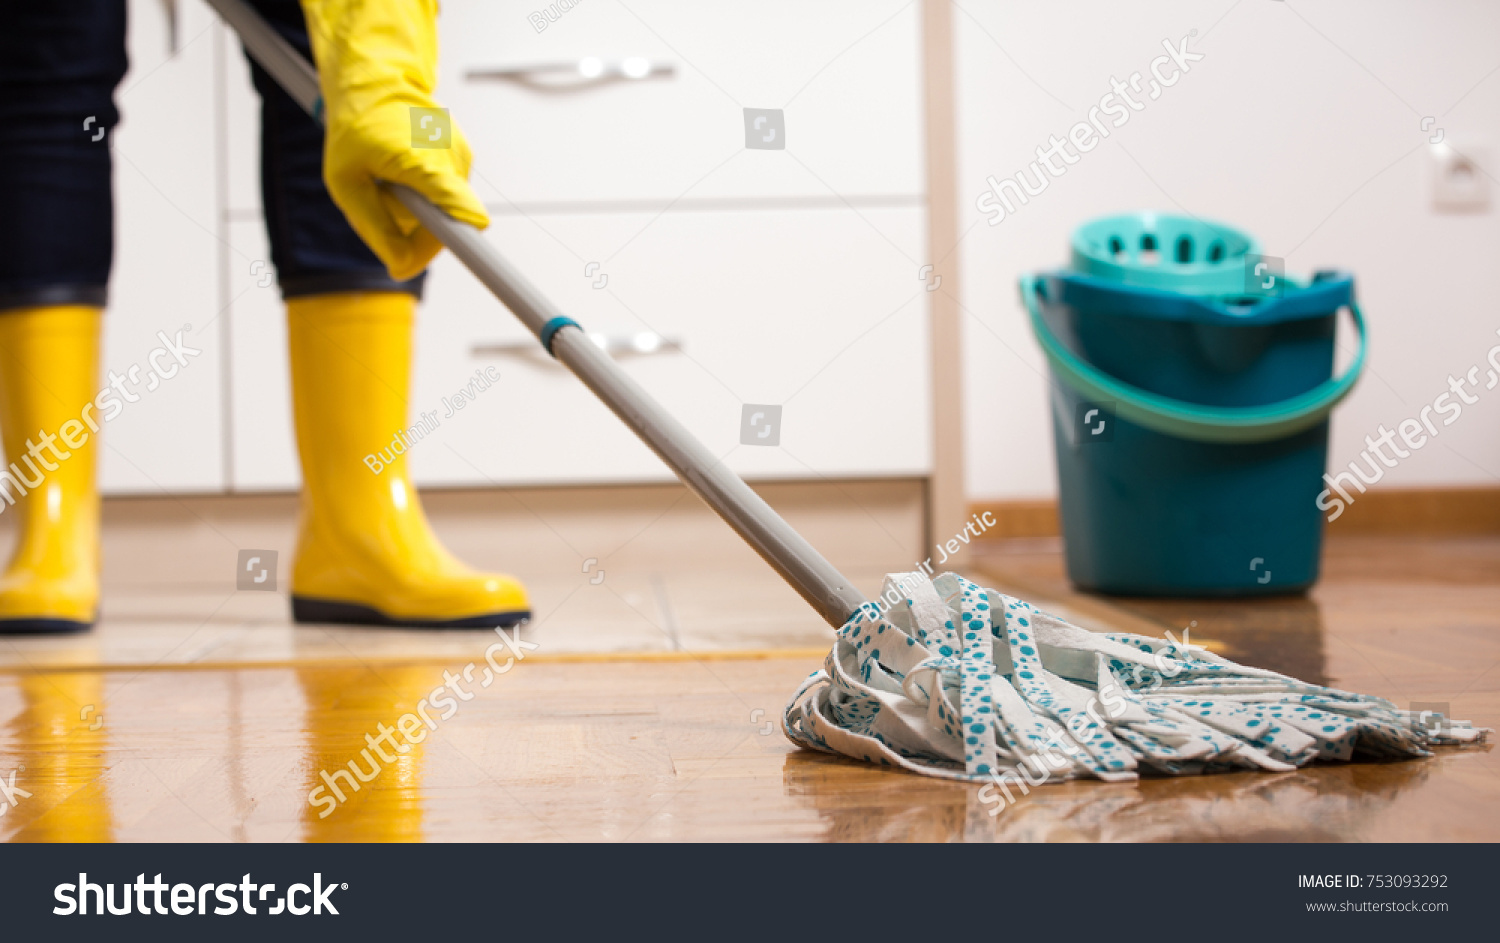 Maid gumboots mopping tiled floor kitchen stock photo royalty free maid in gumboots mopping tiled floor in kitchen housekeeping and home hygiene concept dailygadgetfo Image collections